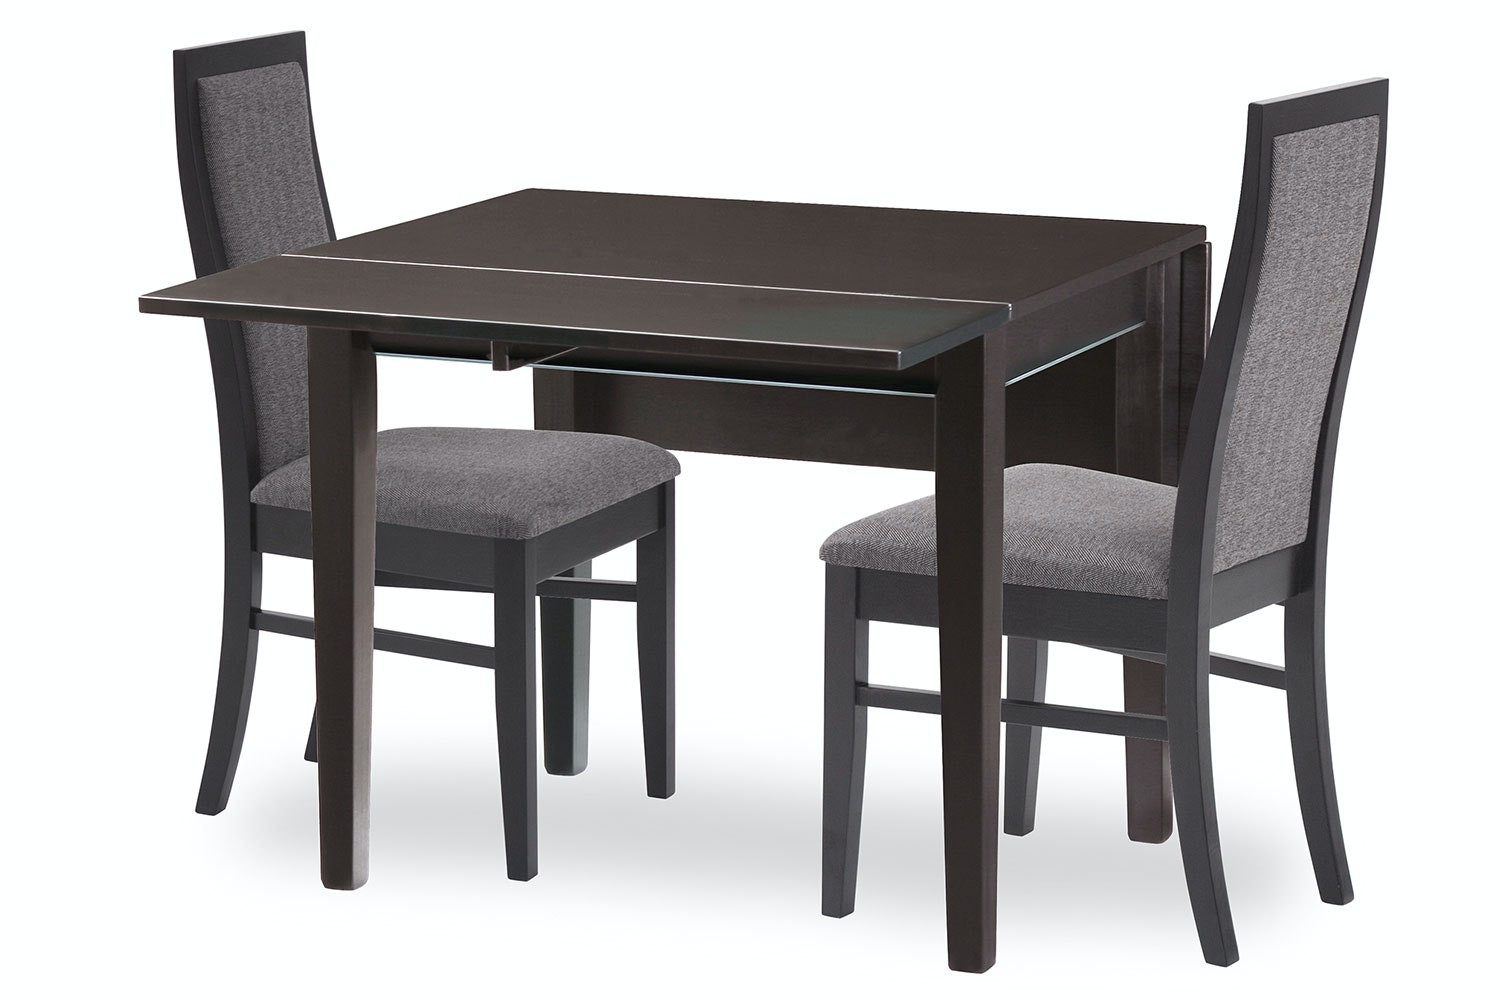 Image of: Metro Dining Table Drop Leaf By Coastwood Furniture Harvey Norman New Zealand